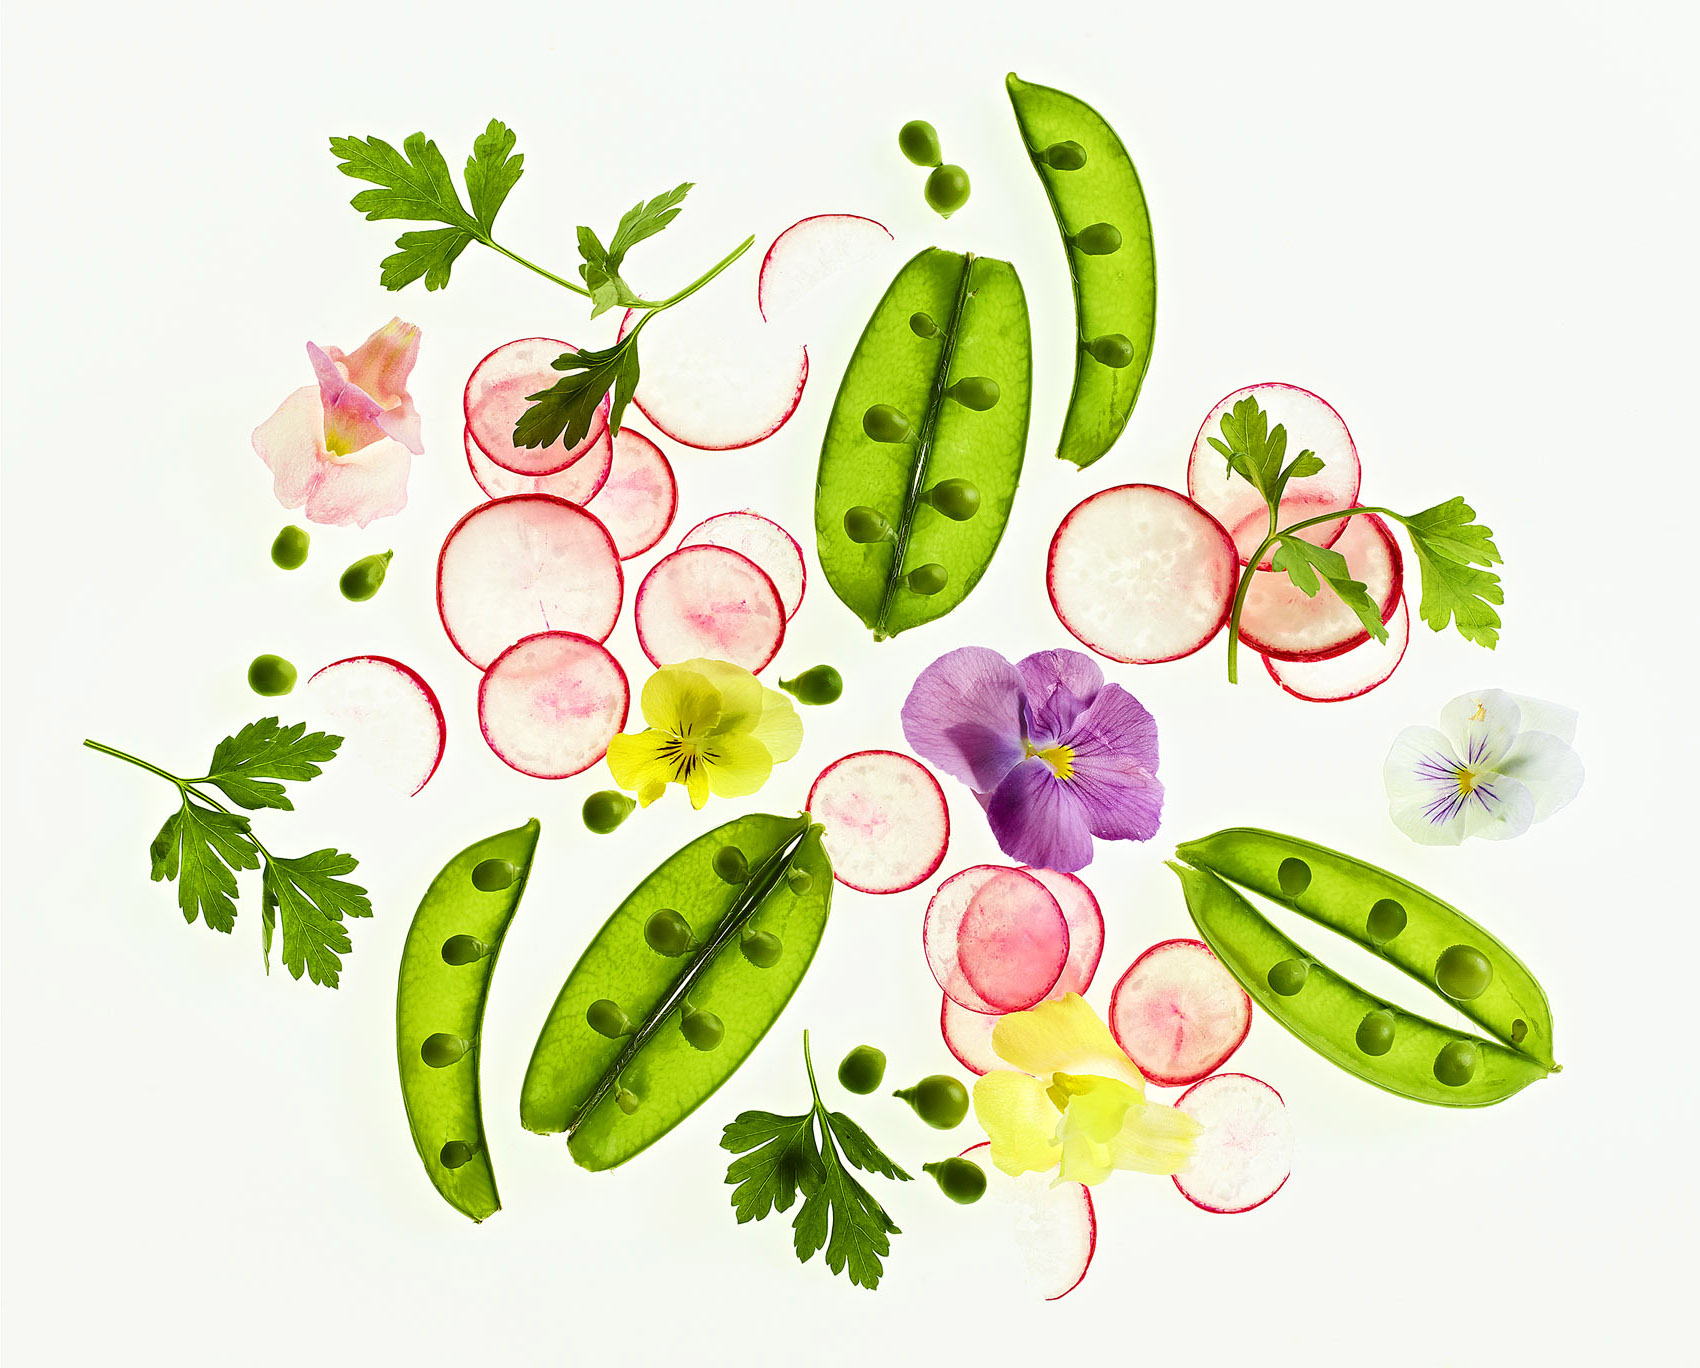 04-food_garden_salad-rotated